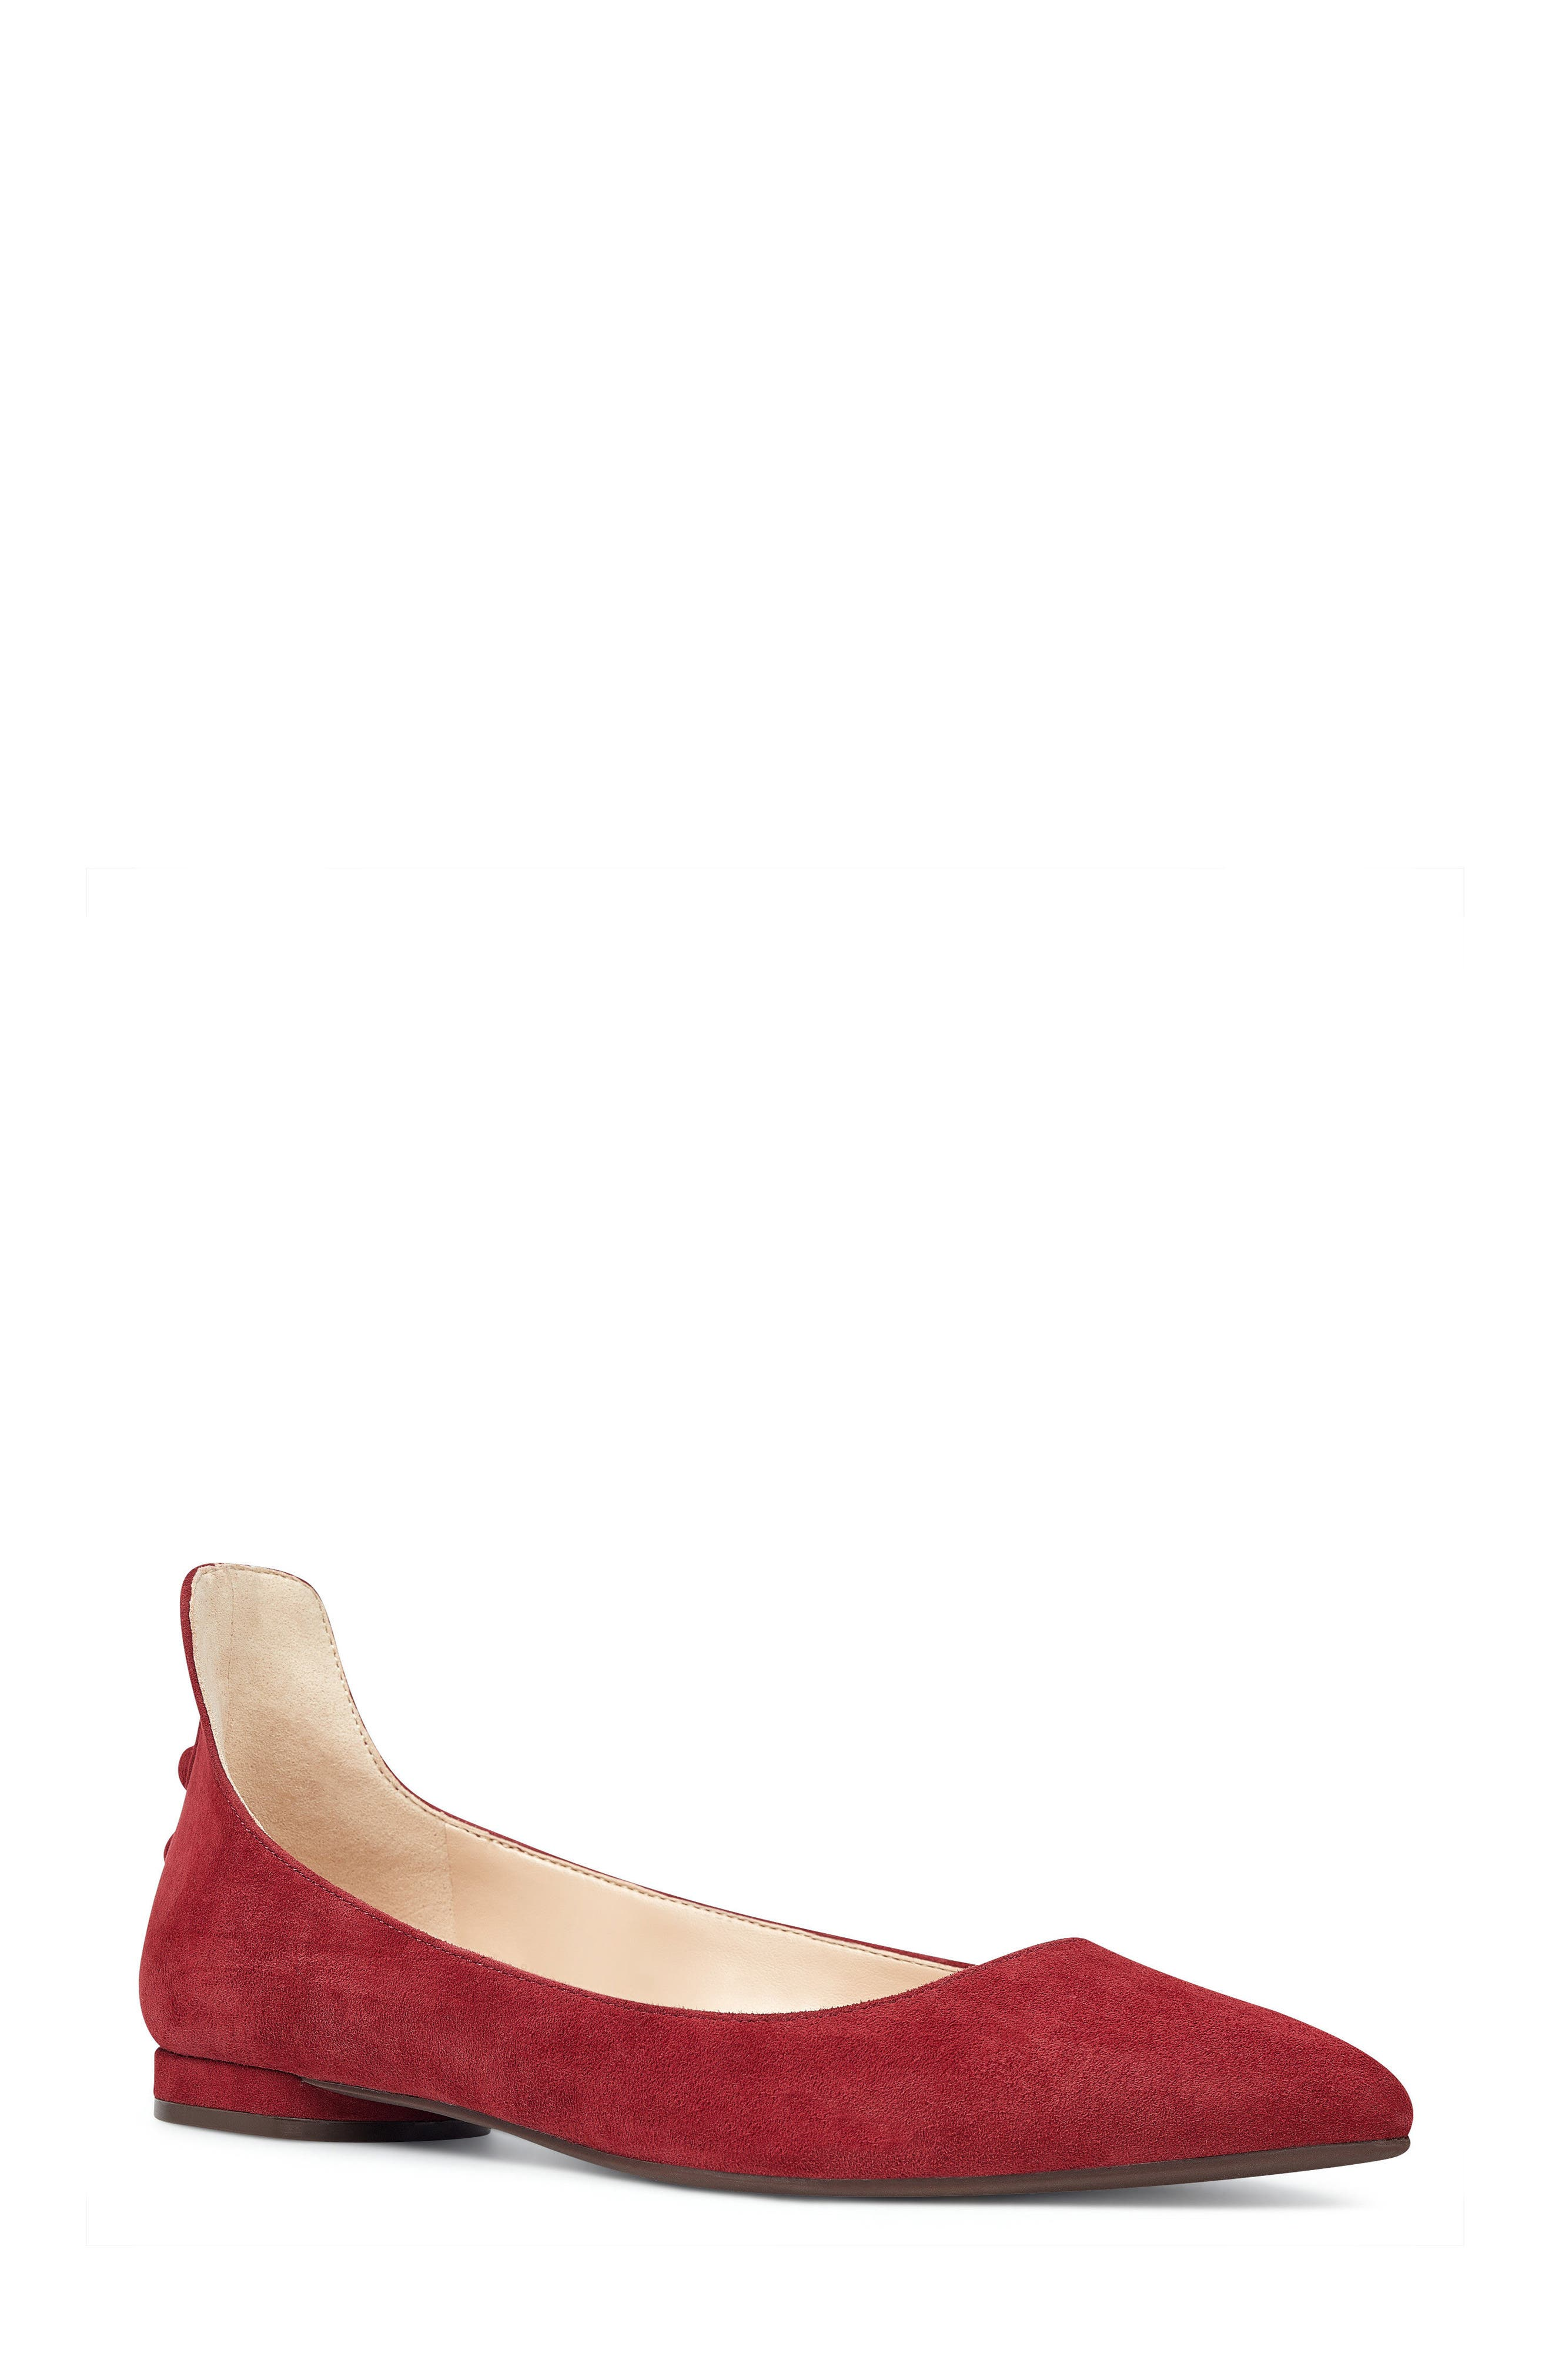 Owl Skimmer Flat,                             Main thumbnail 1, color,                             Red Suede